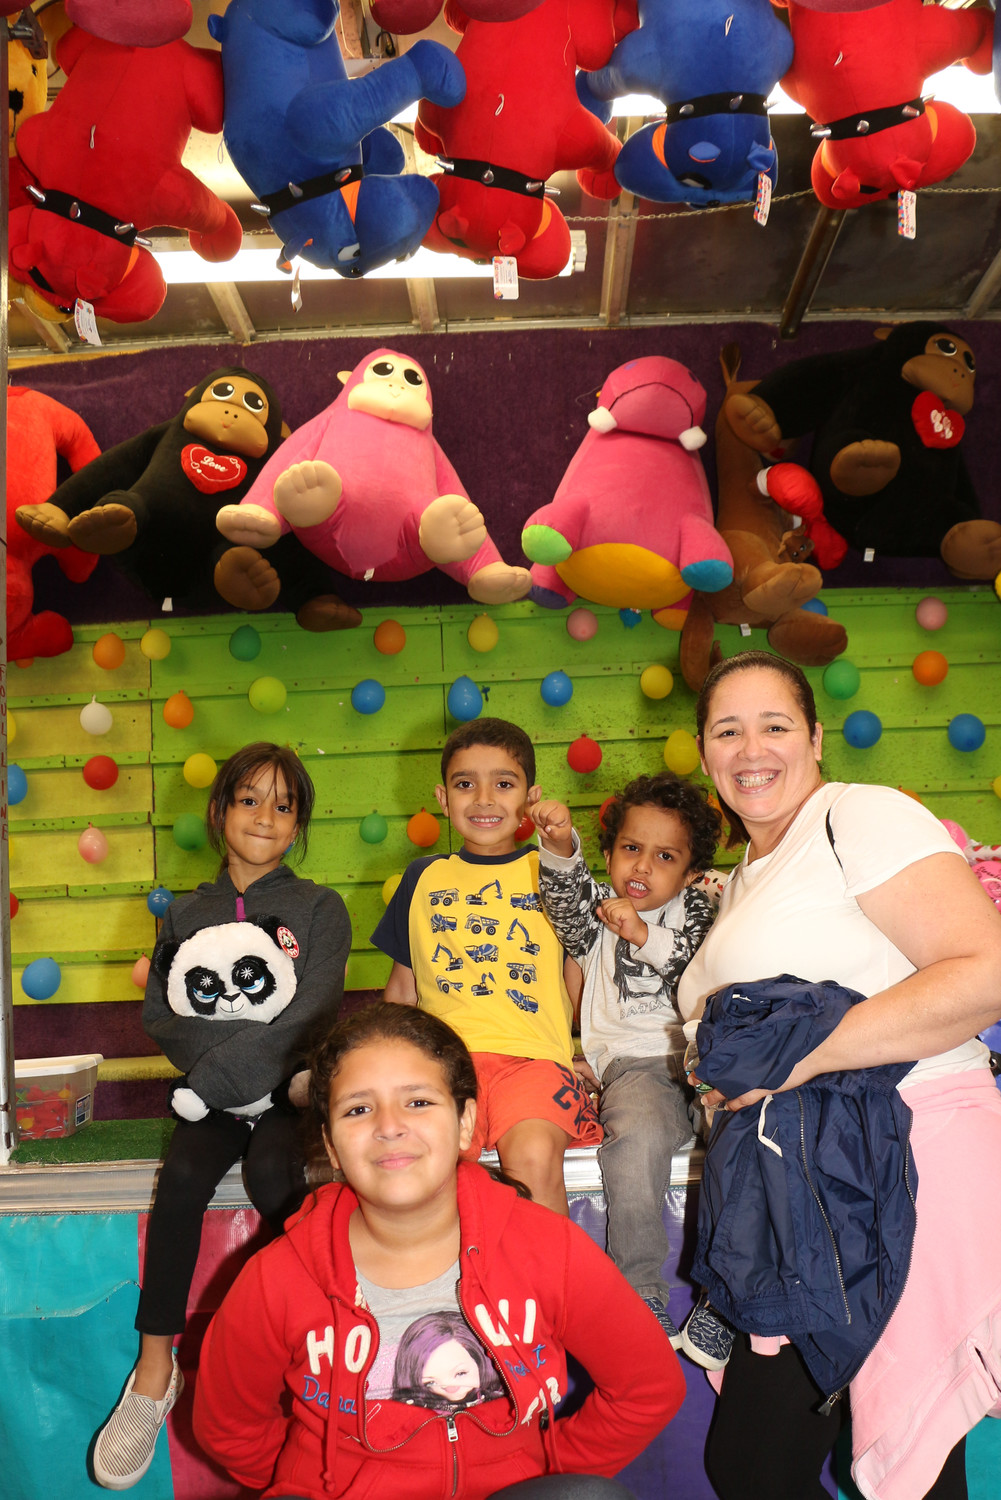 Judy Velesquez with her children and friends. Eliza, 6, Layla Depaz, 6 , Sebastian Depaz, 4, and Laura Velesquz, 8, playing many games at the carnival.